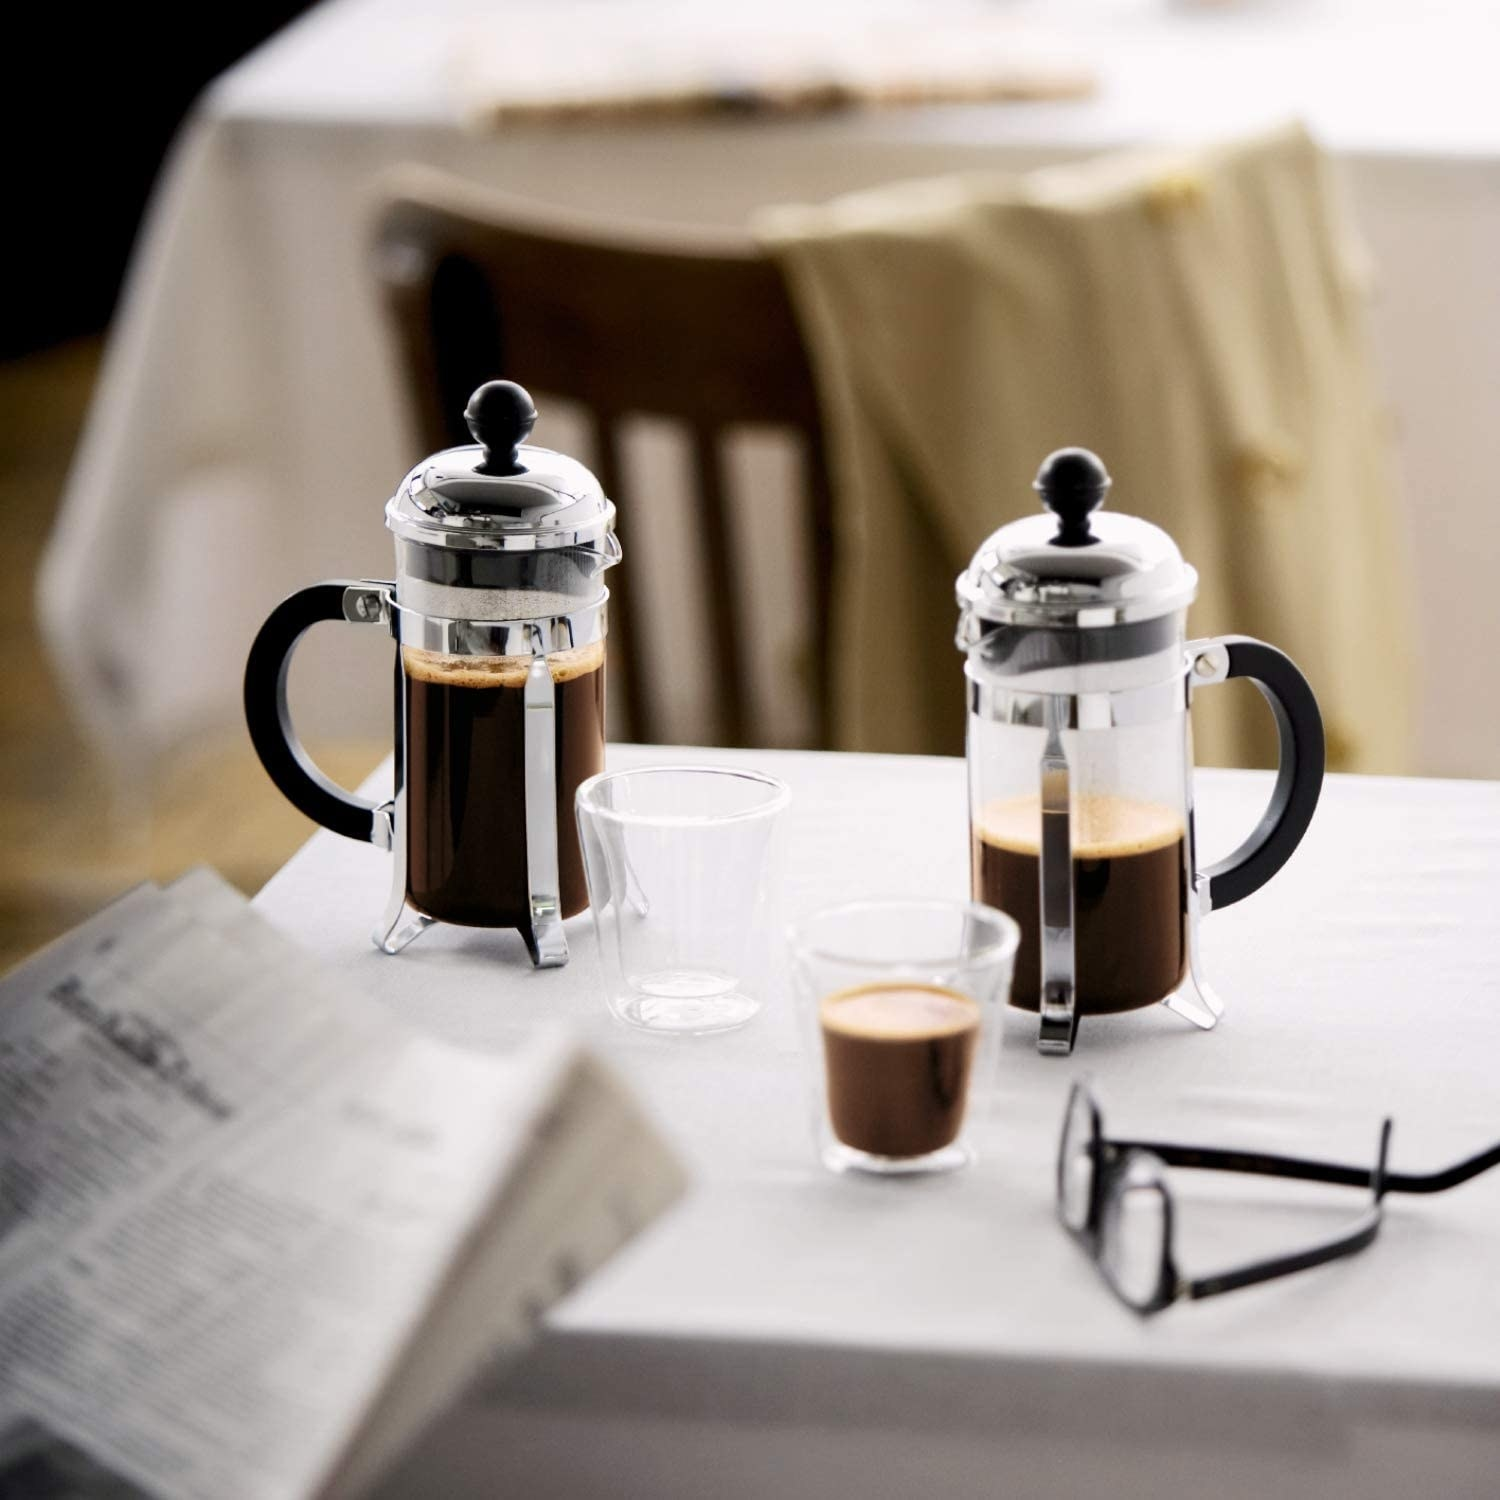 The French press, featuring a glass carafe and chrome top and legs